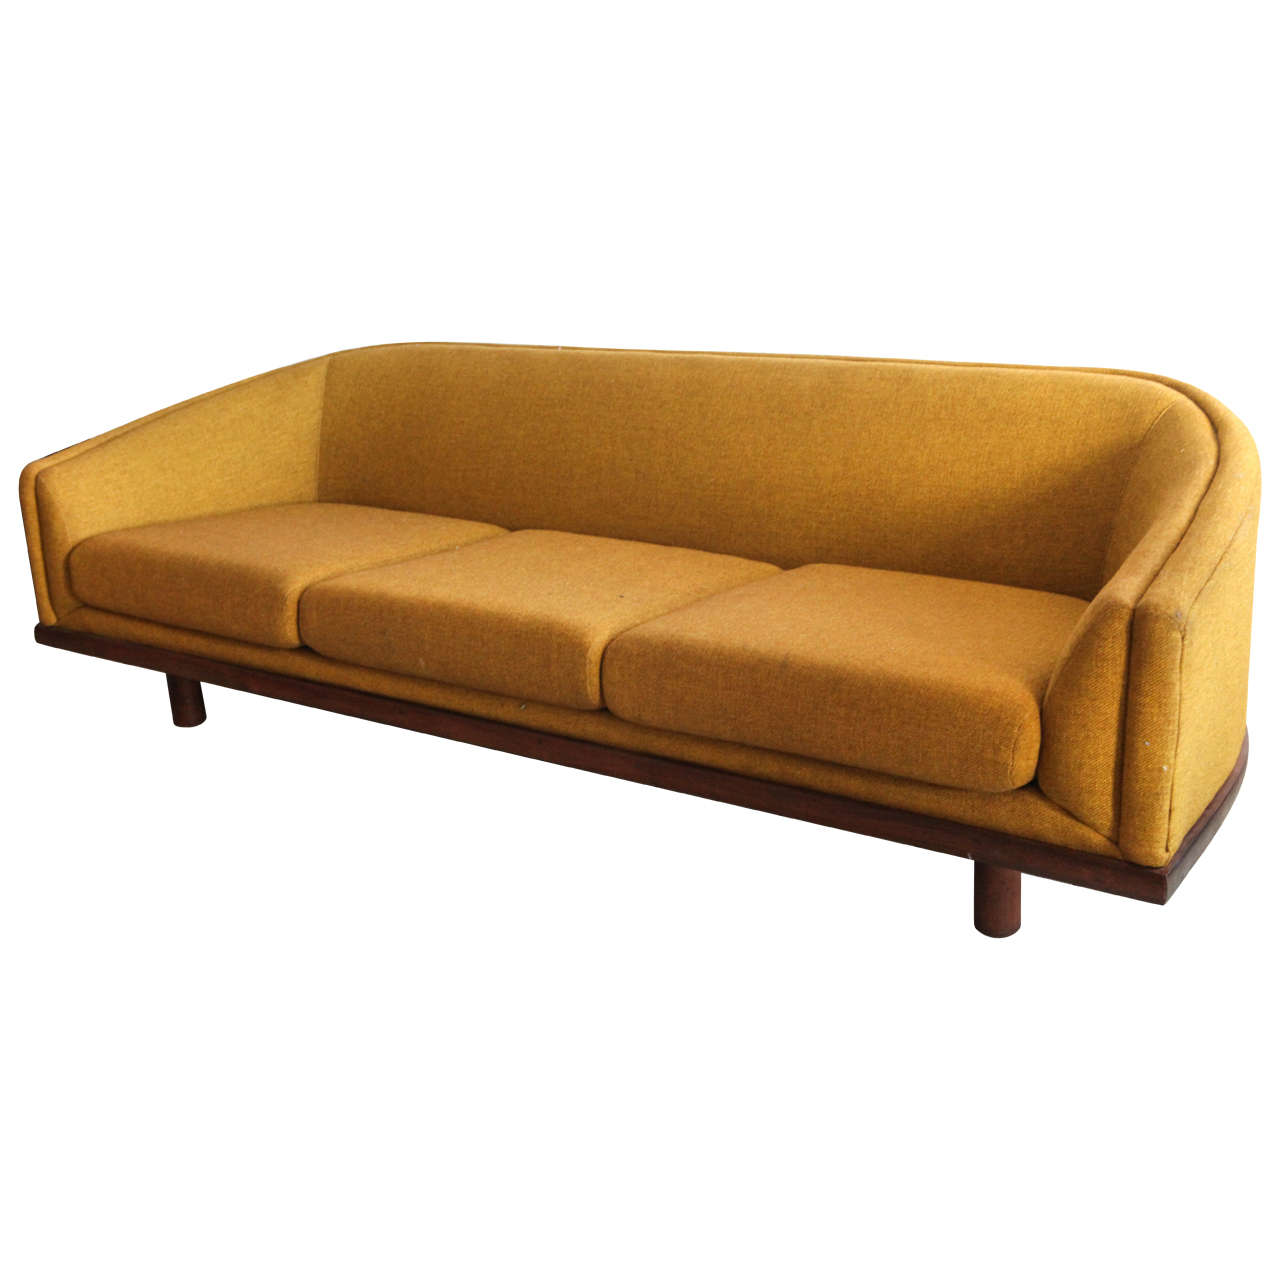 Mid Century Curved Back Sofa In Mustard Yellow Fabric At 1stdibs